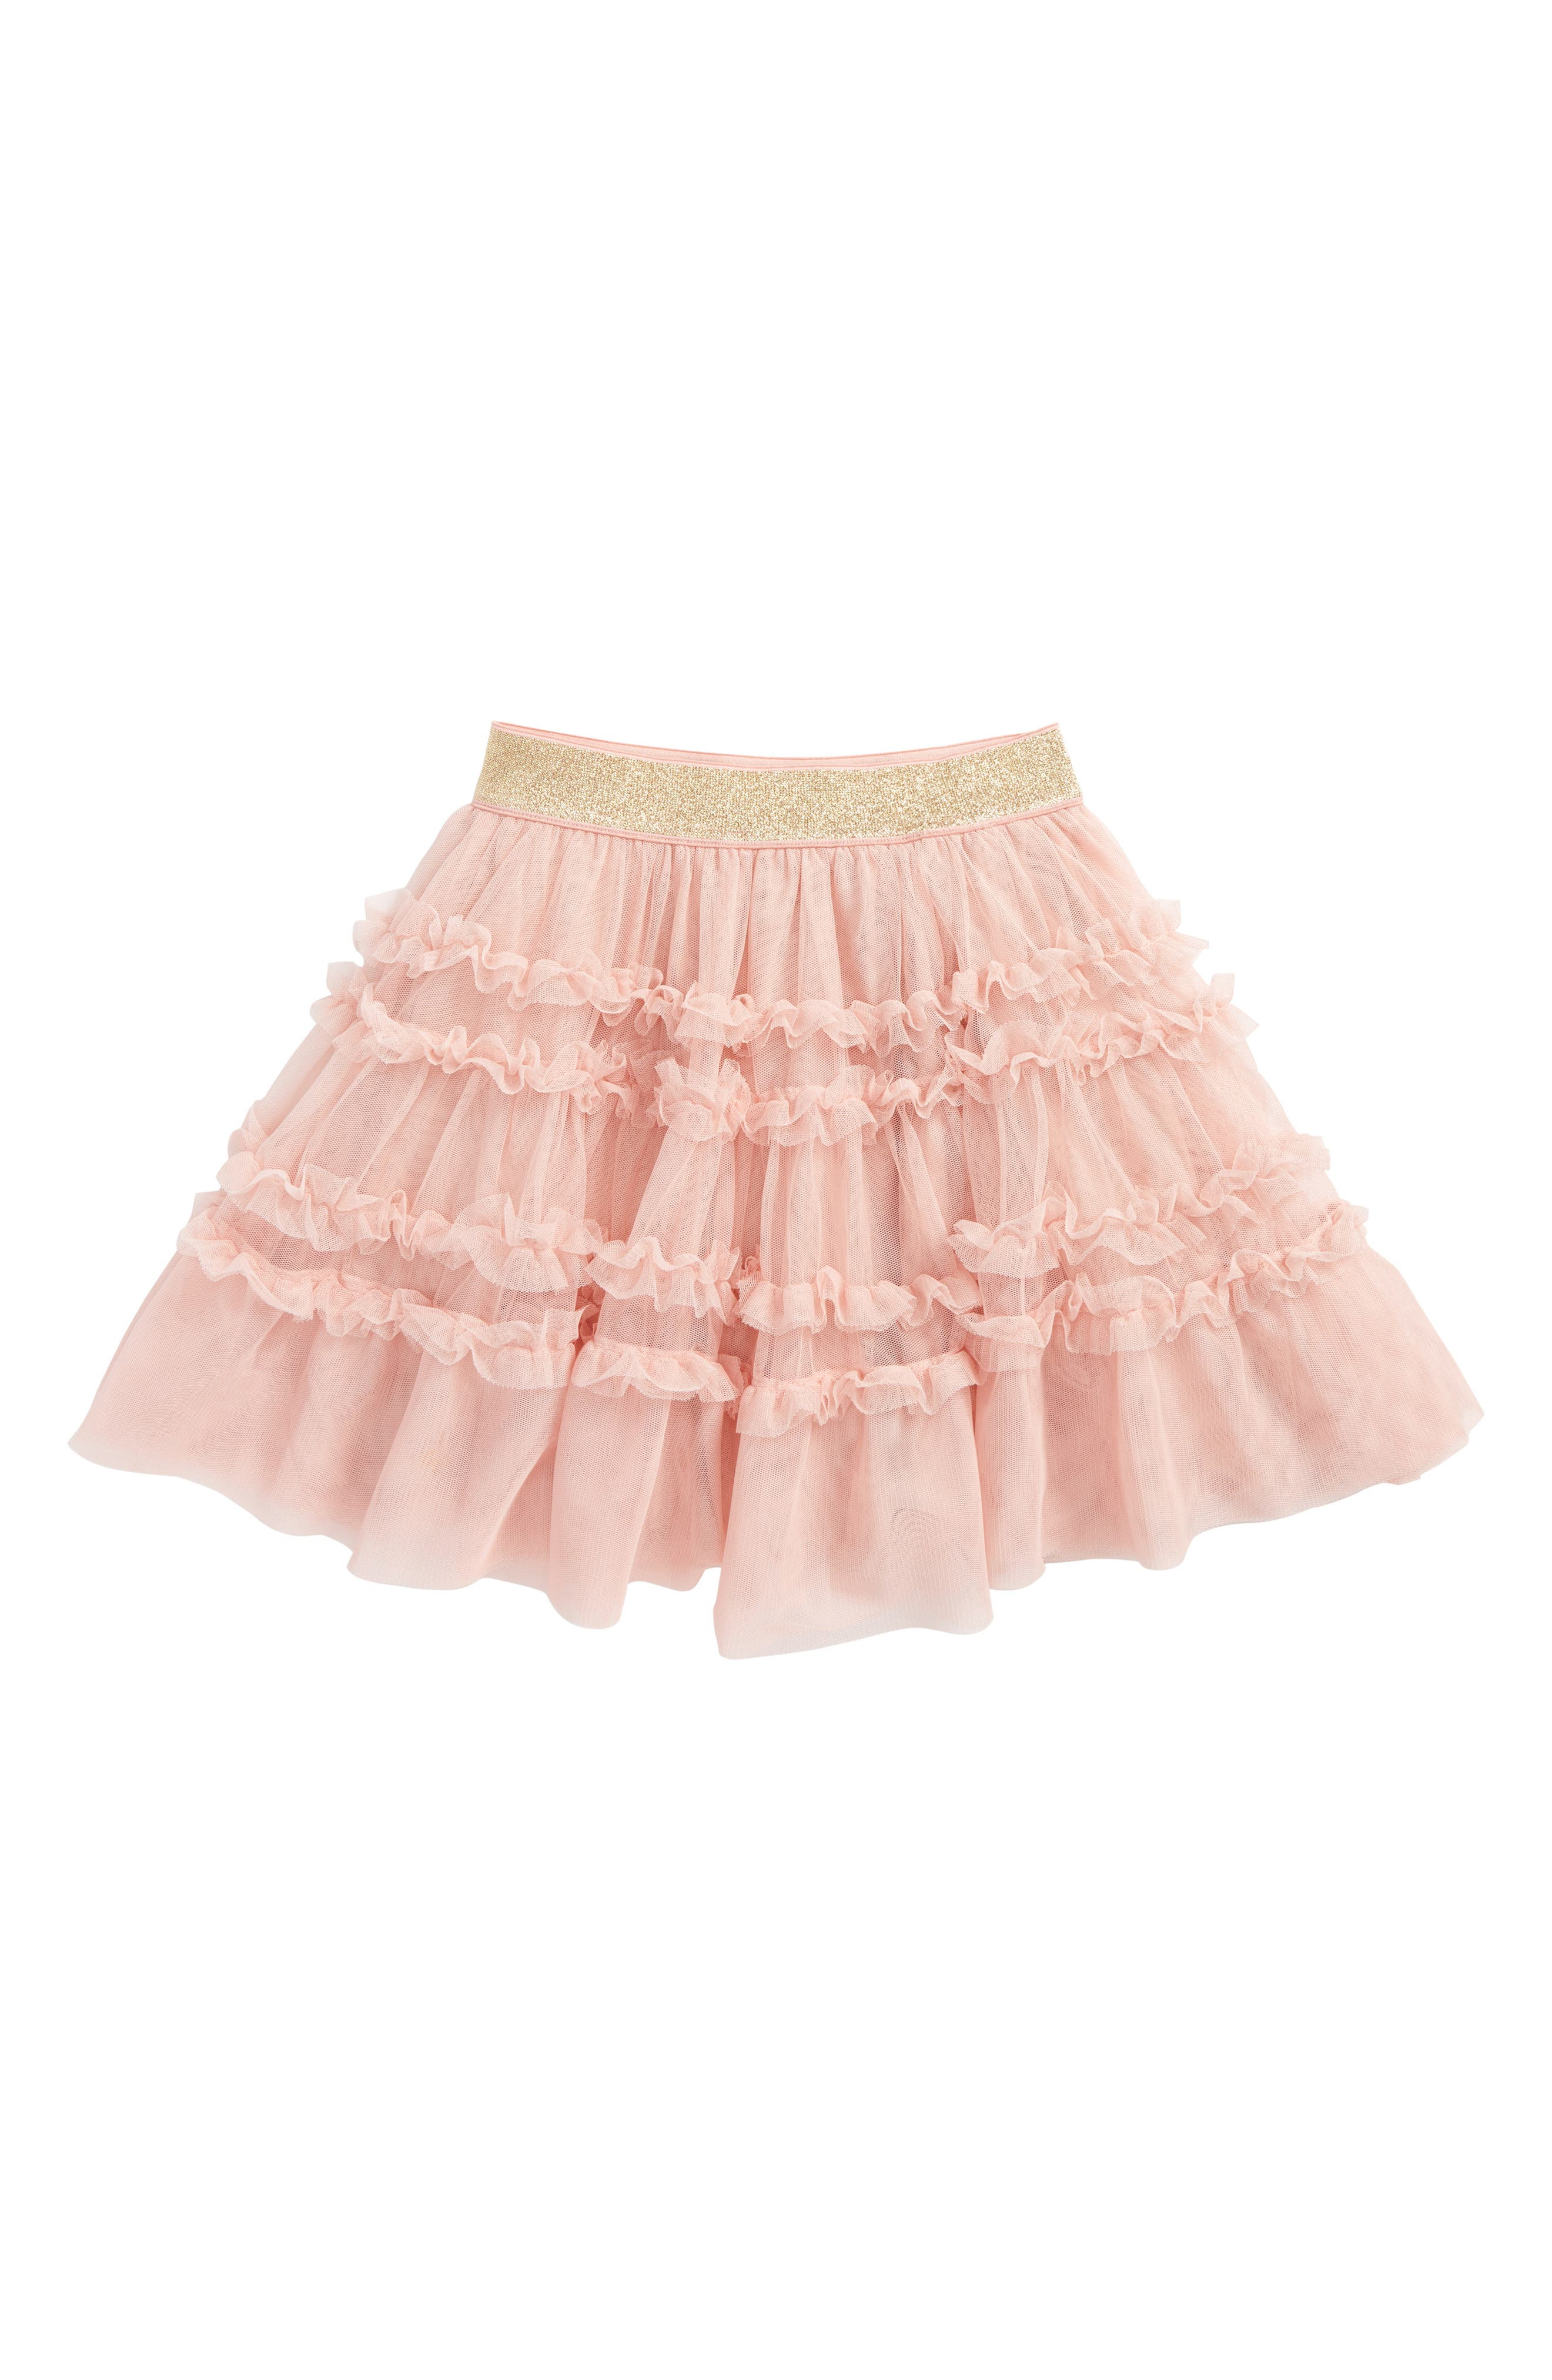 Ruffle Tulle Skirt,                             Main thumbnail 1, color,                             Provence Dusty Pink Pnk